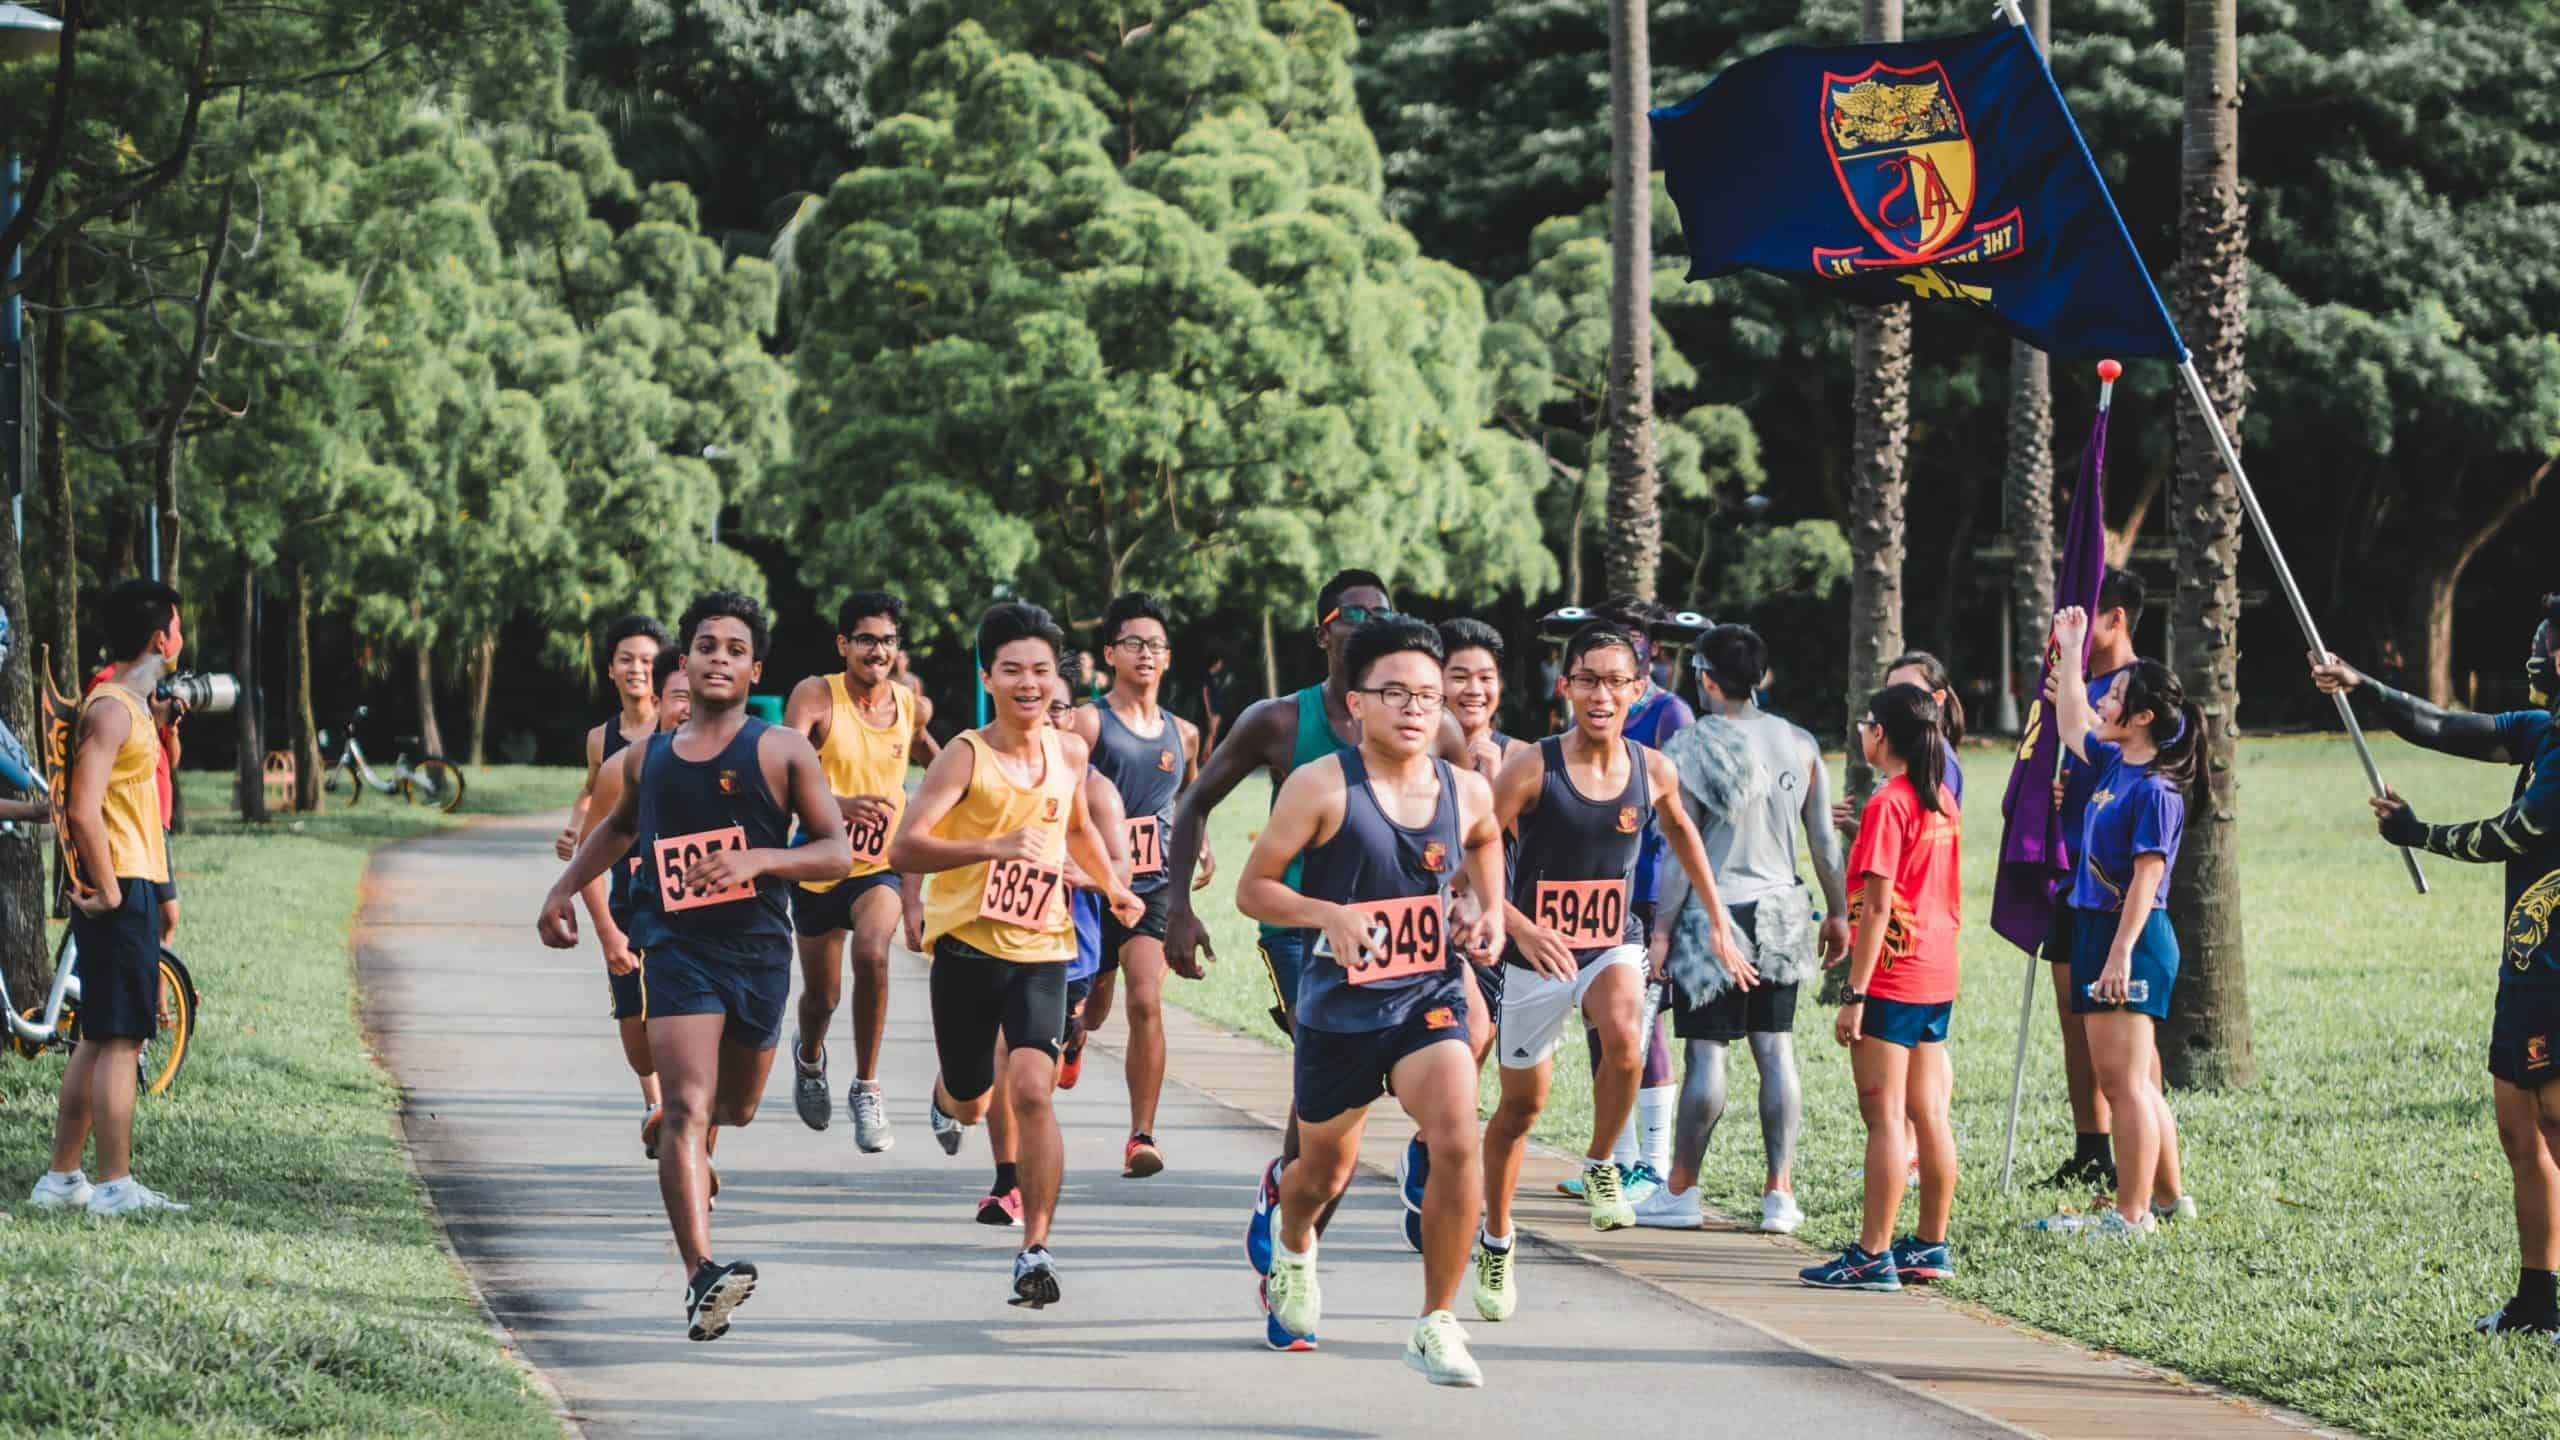 Running a marathon: how to survive the historic endurance race